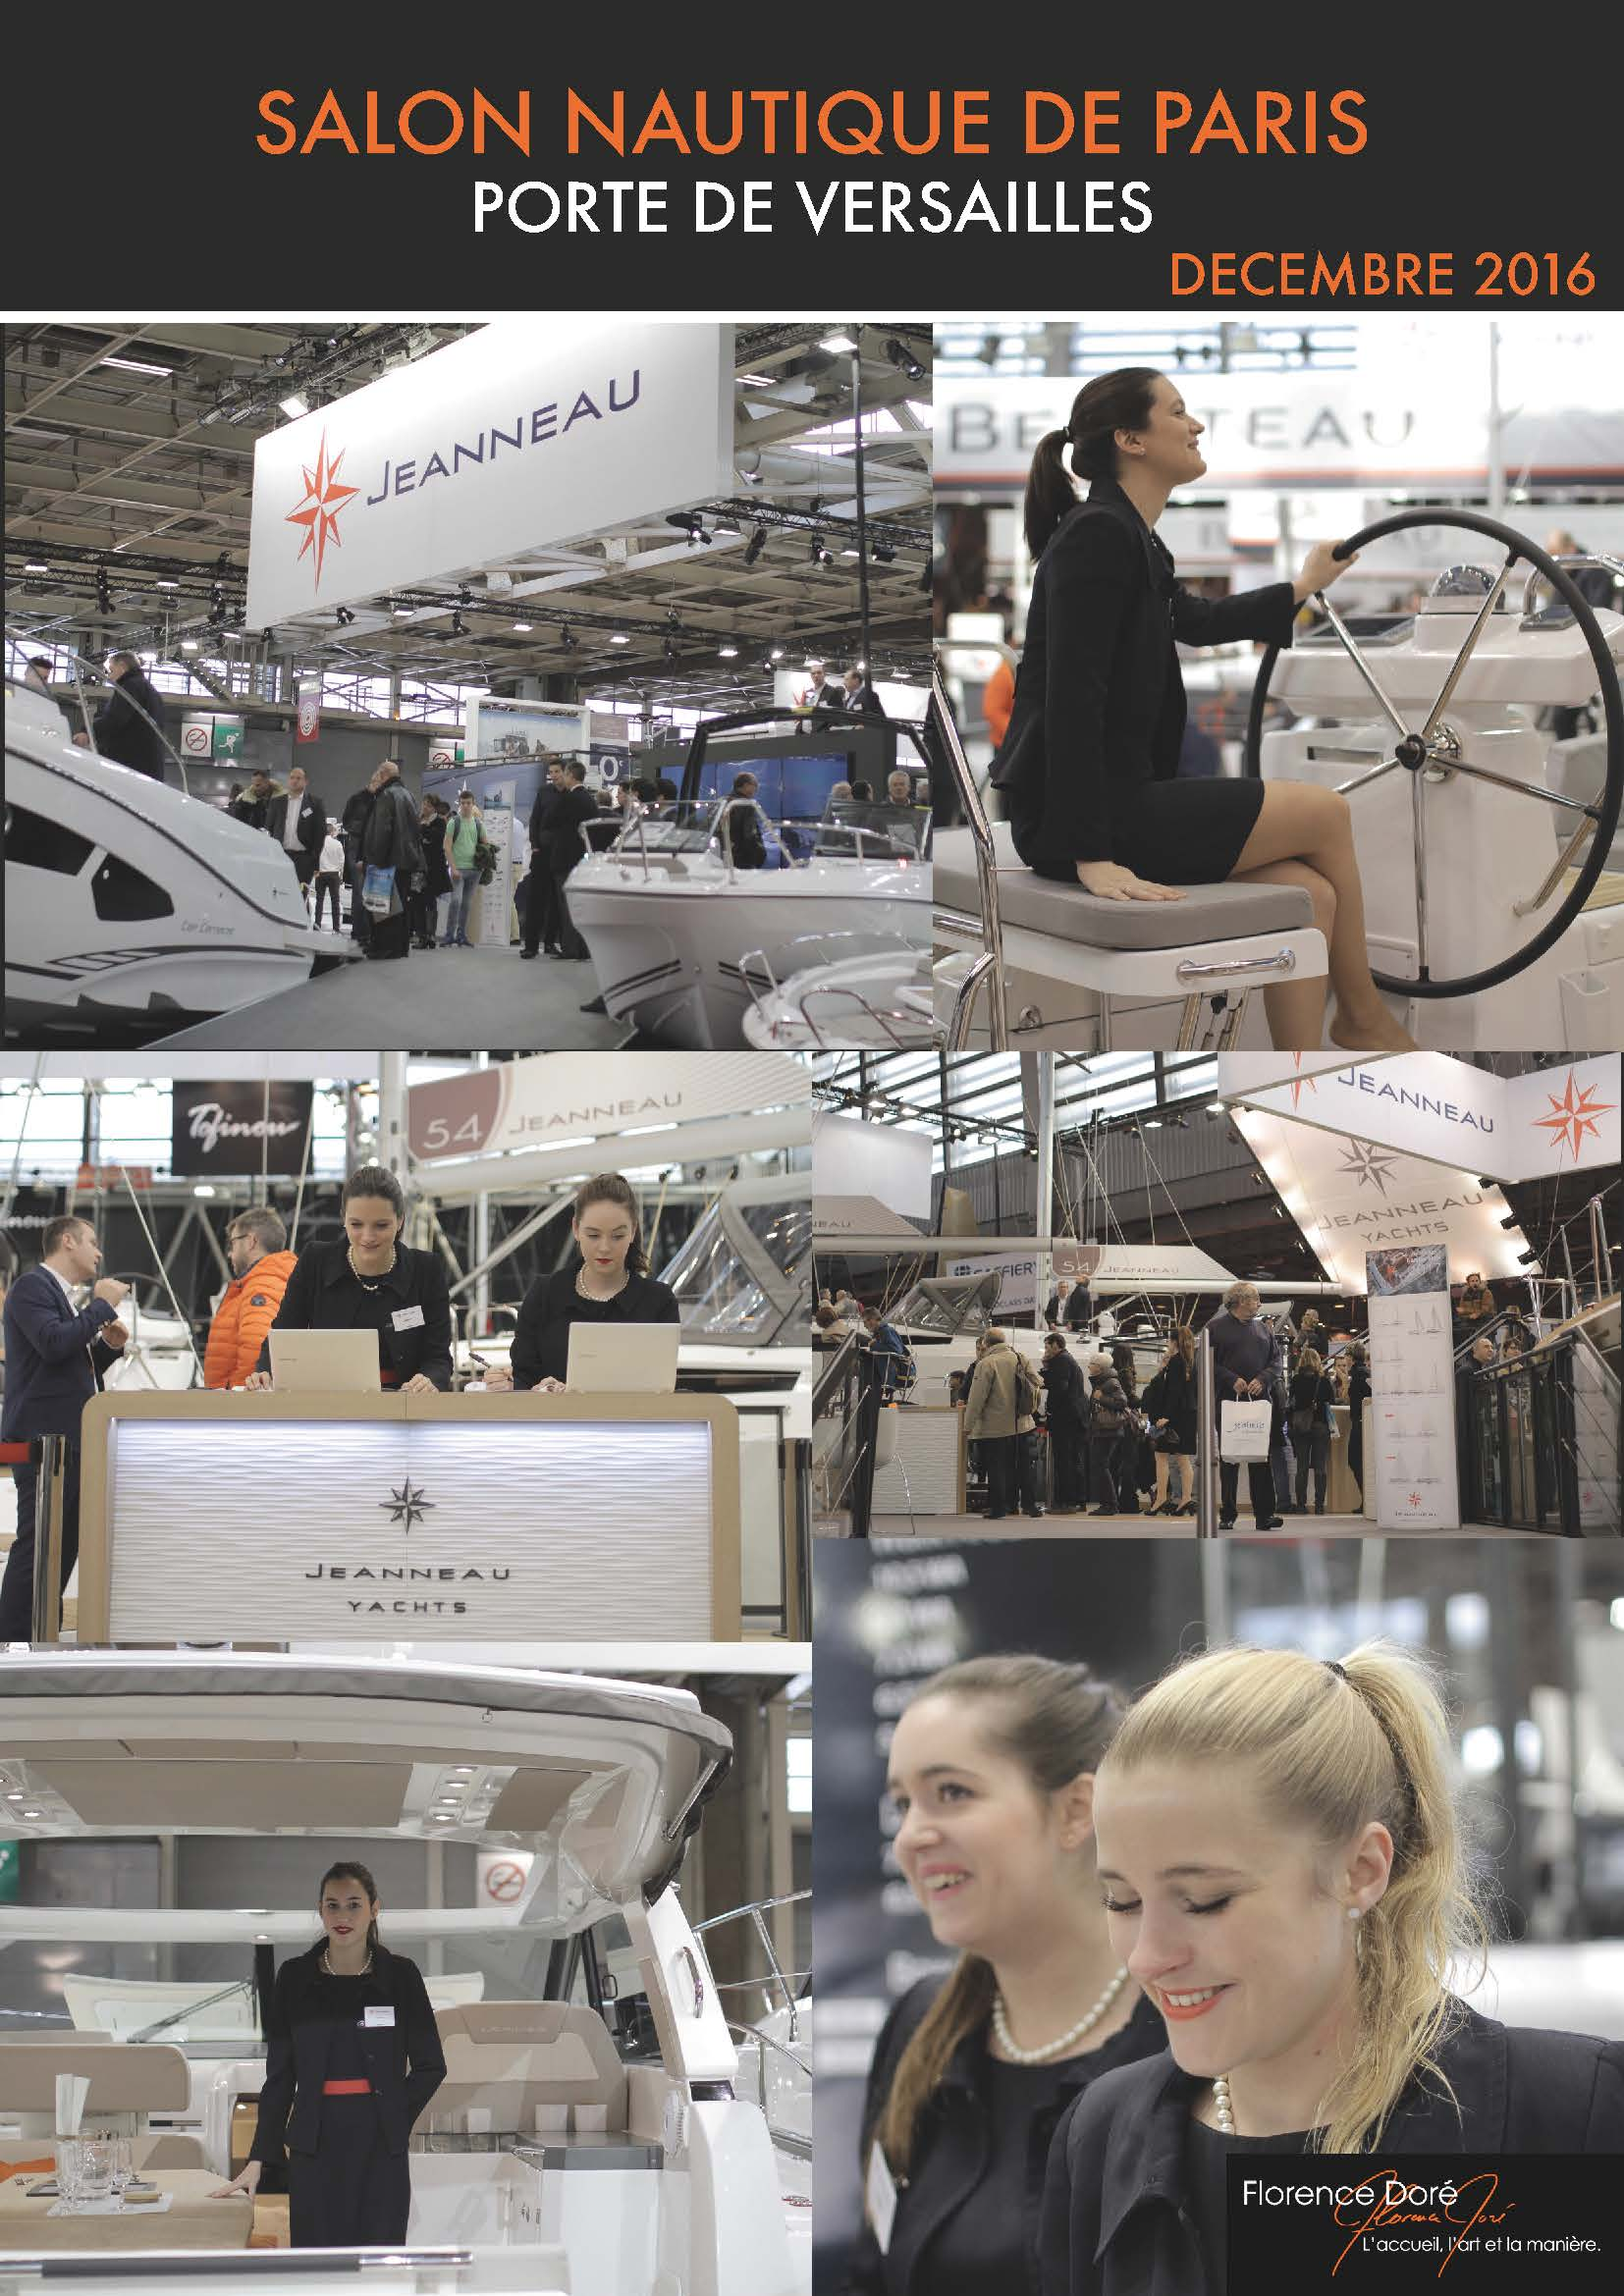 Florence dor salon nautique international de paris 2016 for Salon nautisme paris